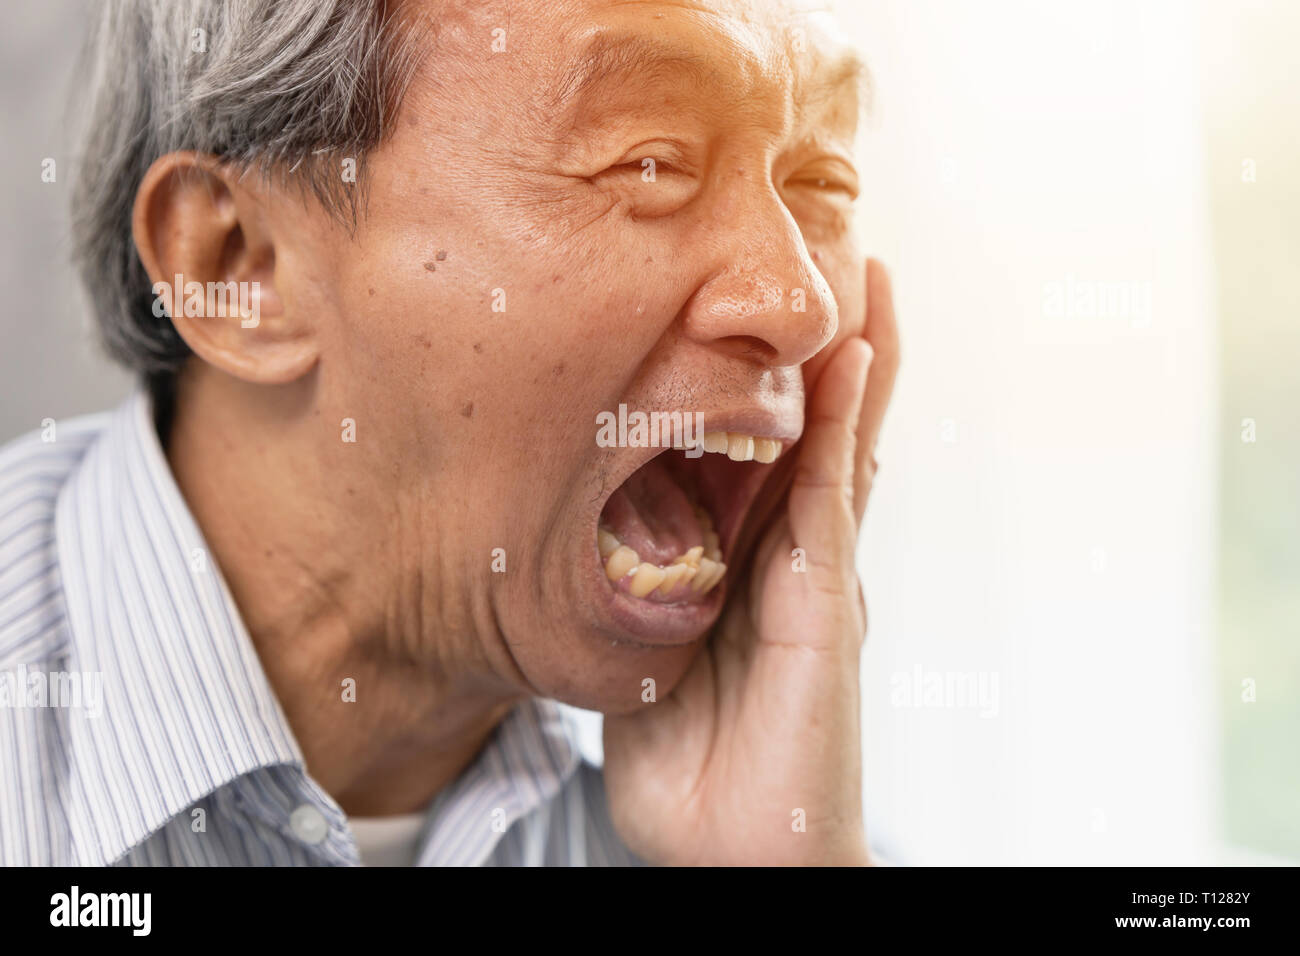 Asian elder serious pain tooth dental problem teeth caries decayed inside jaw bone. - Stock Image